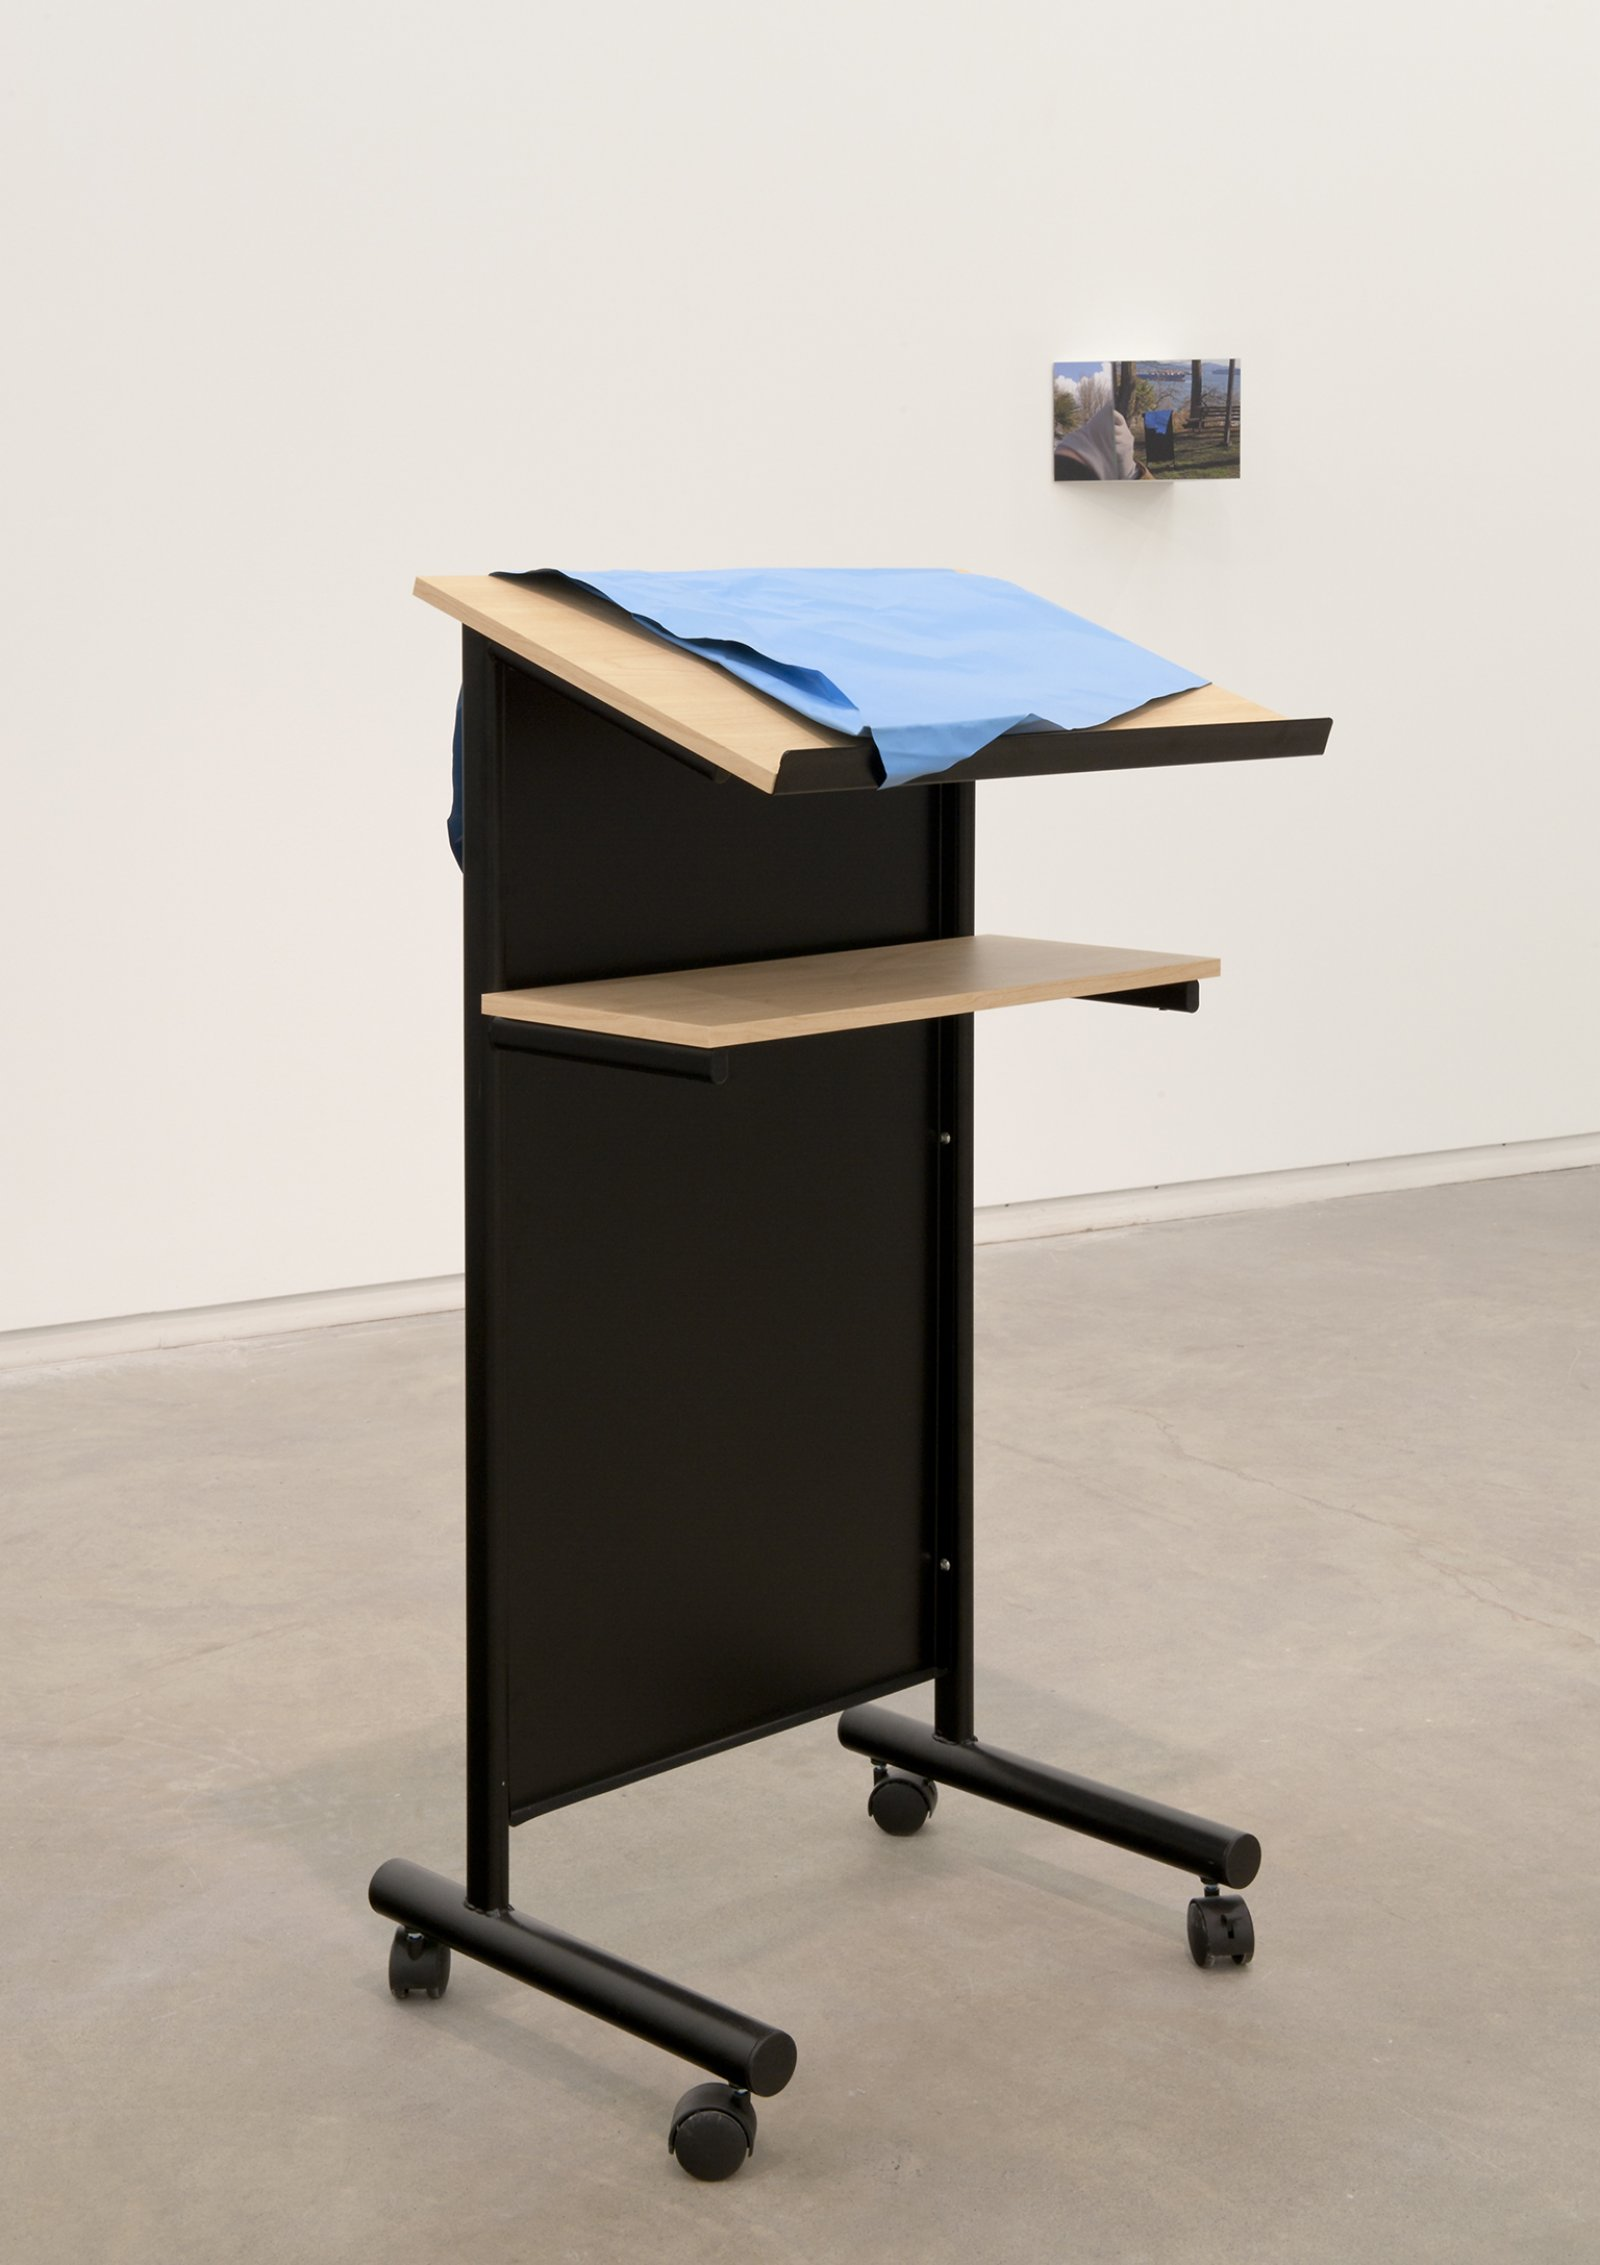 Judy Radul, Object Analysis Spectator Poem (Lectern), 2012, painted copper, lectern, colour photograph, lectern: 47 x 23 x 16 in. (118 x 58 x 39 cm), photo: 8 x 10 x 7 in. (20 x 25 x 18 cm)   by Judy Radul